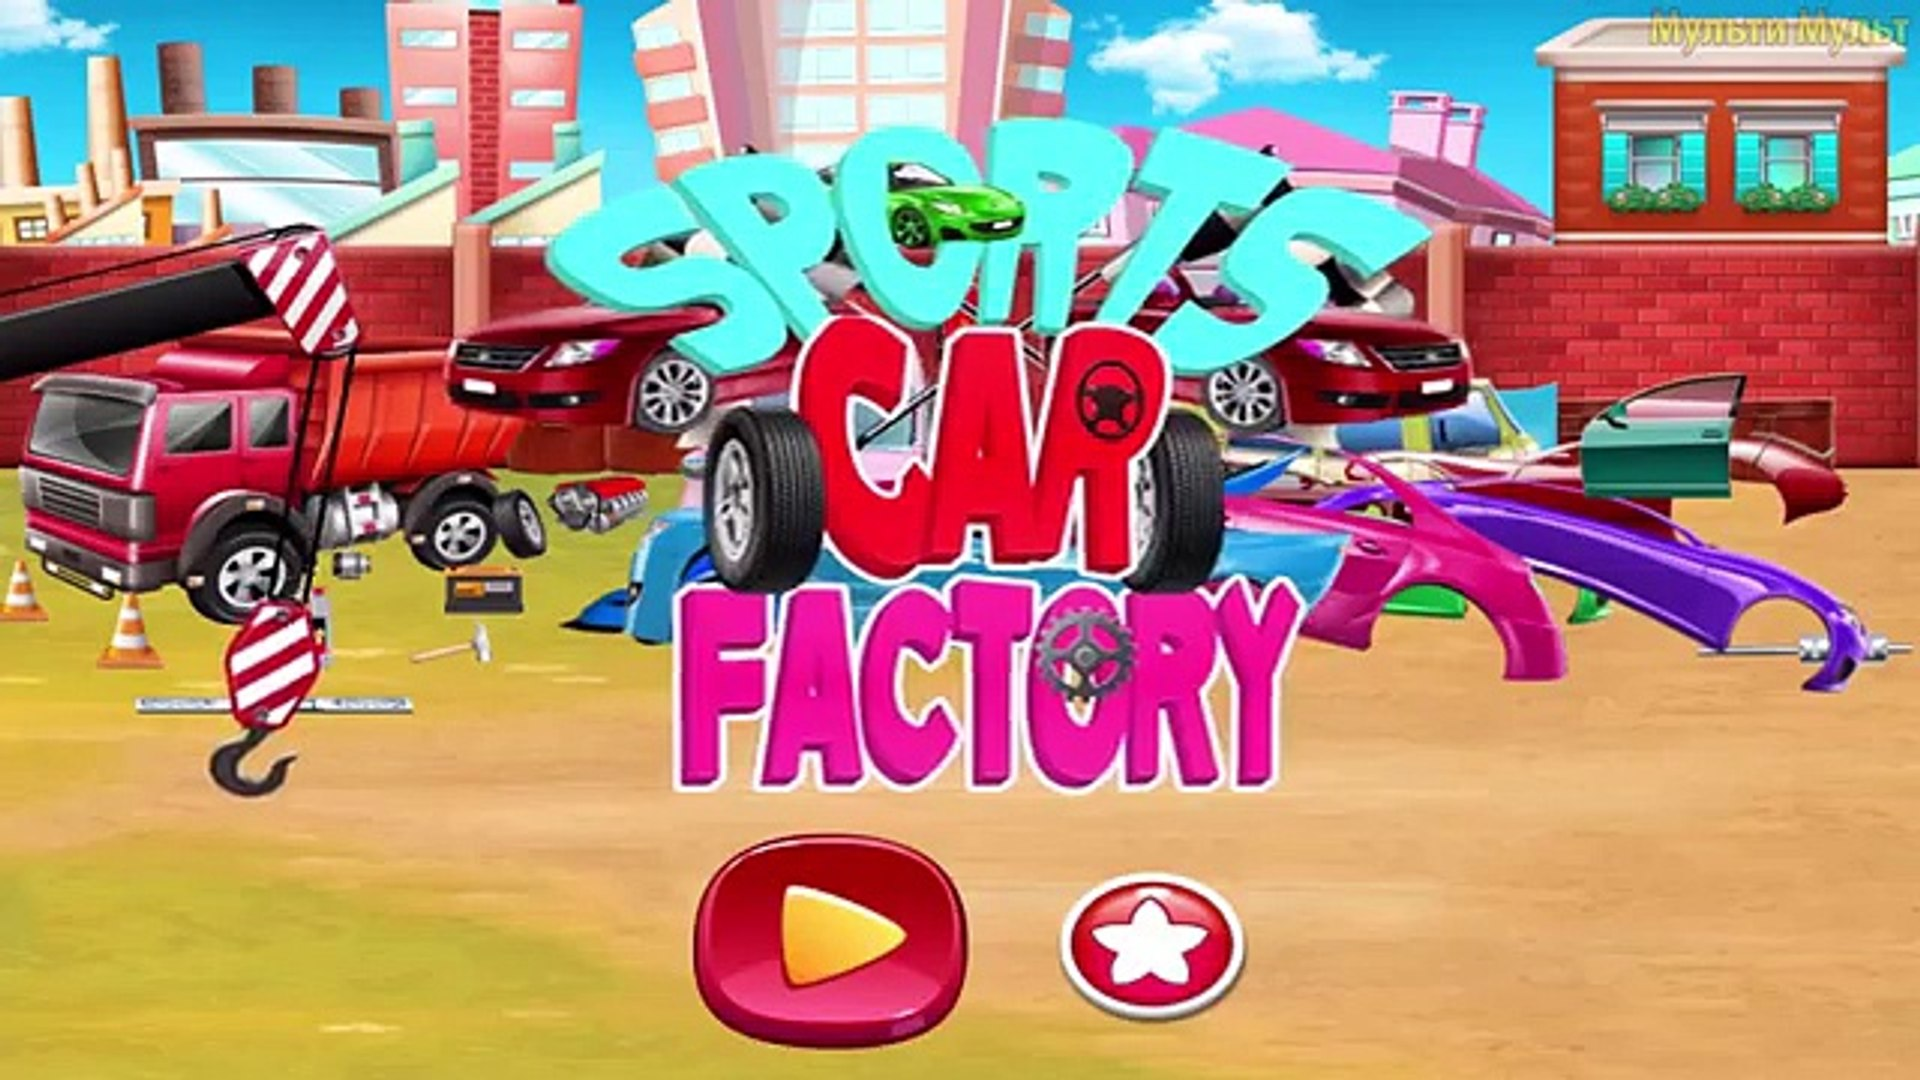 Sports Car Fory | Videos for Kids | Videos For Children | Garage Repair Sport Car for Kids Game